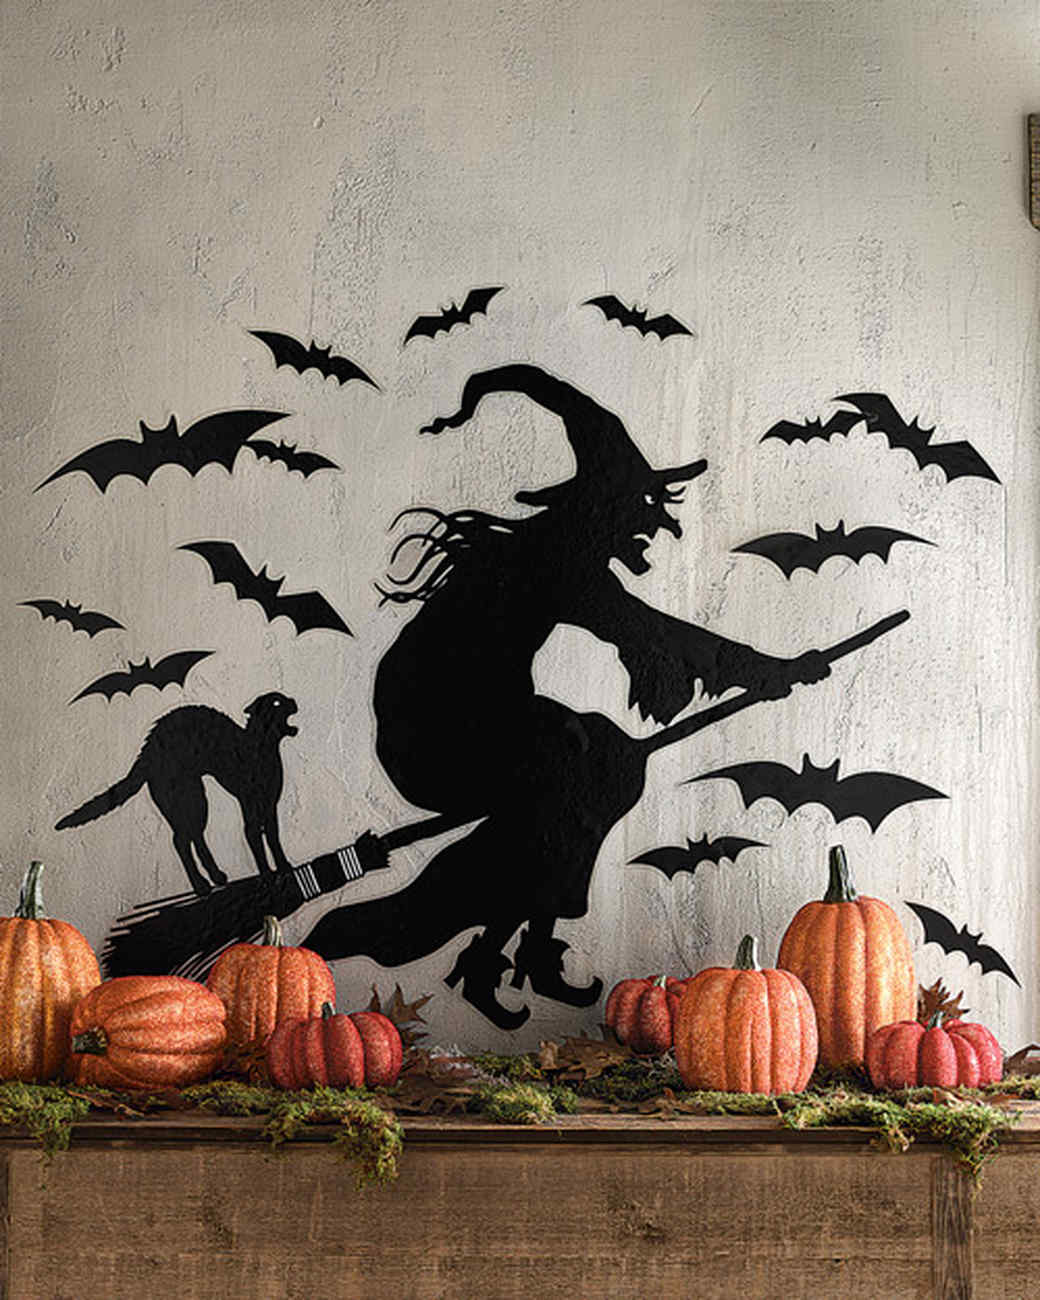 Clip Art and Templates for Halloween Decorations | Martha Stewart